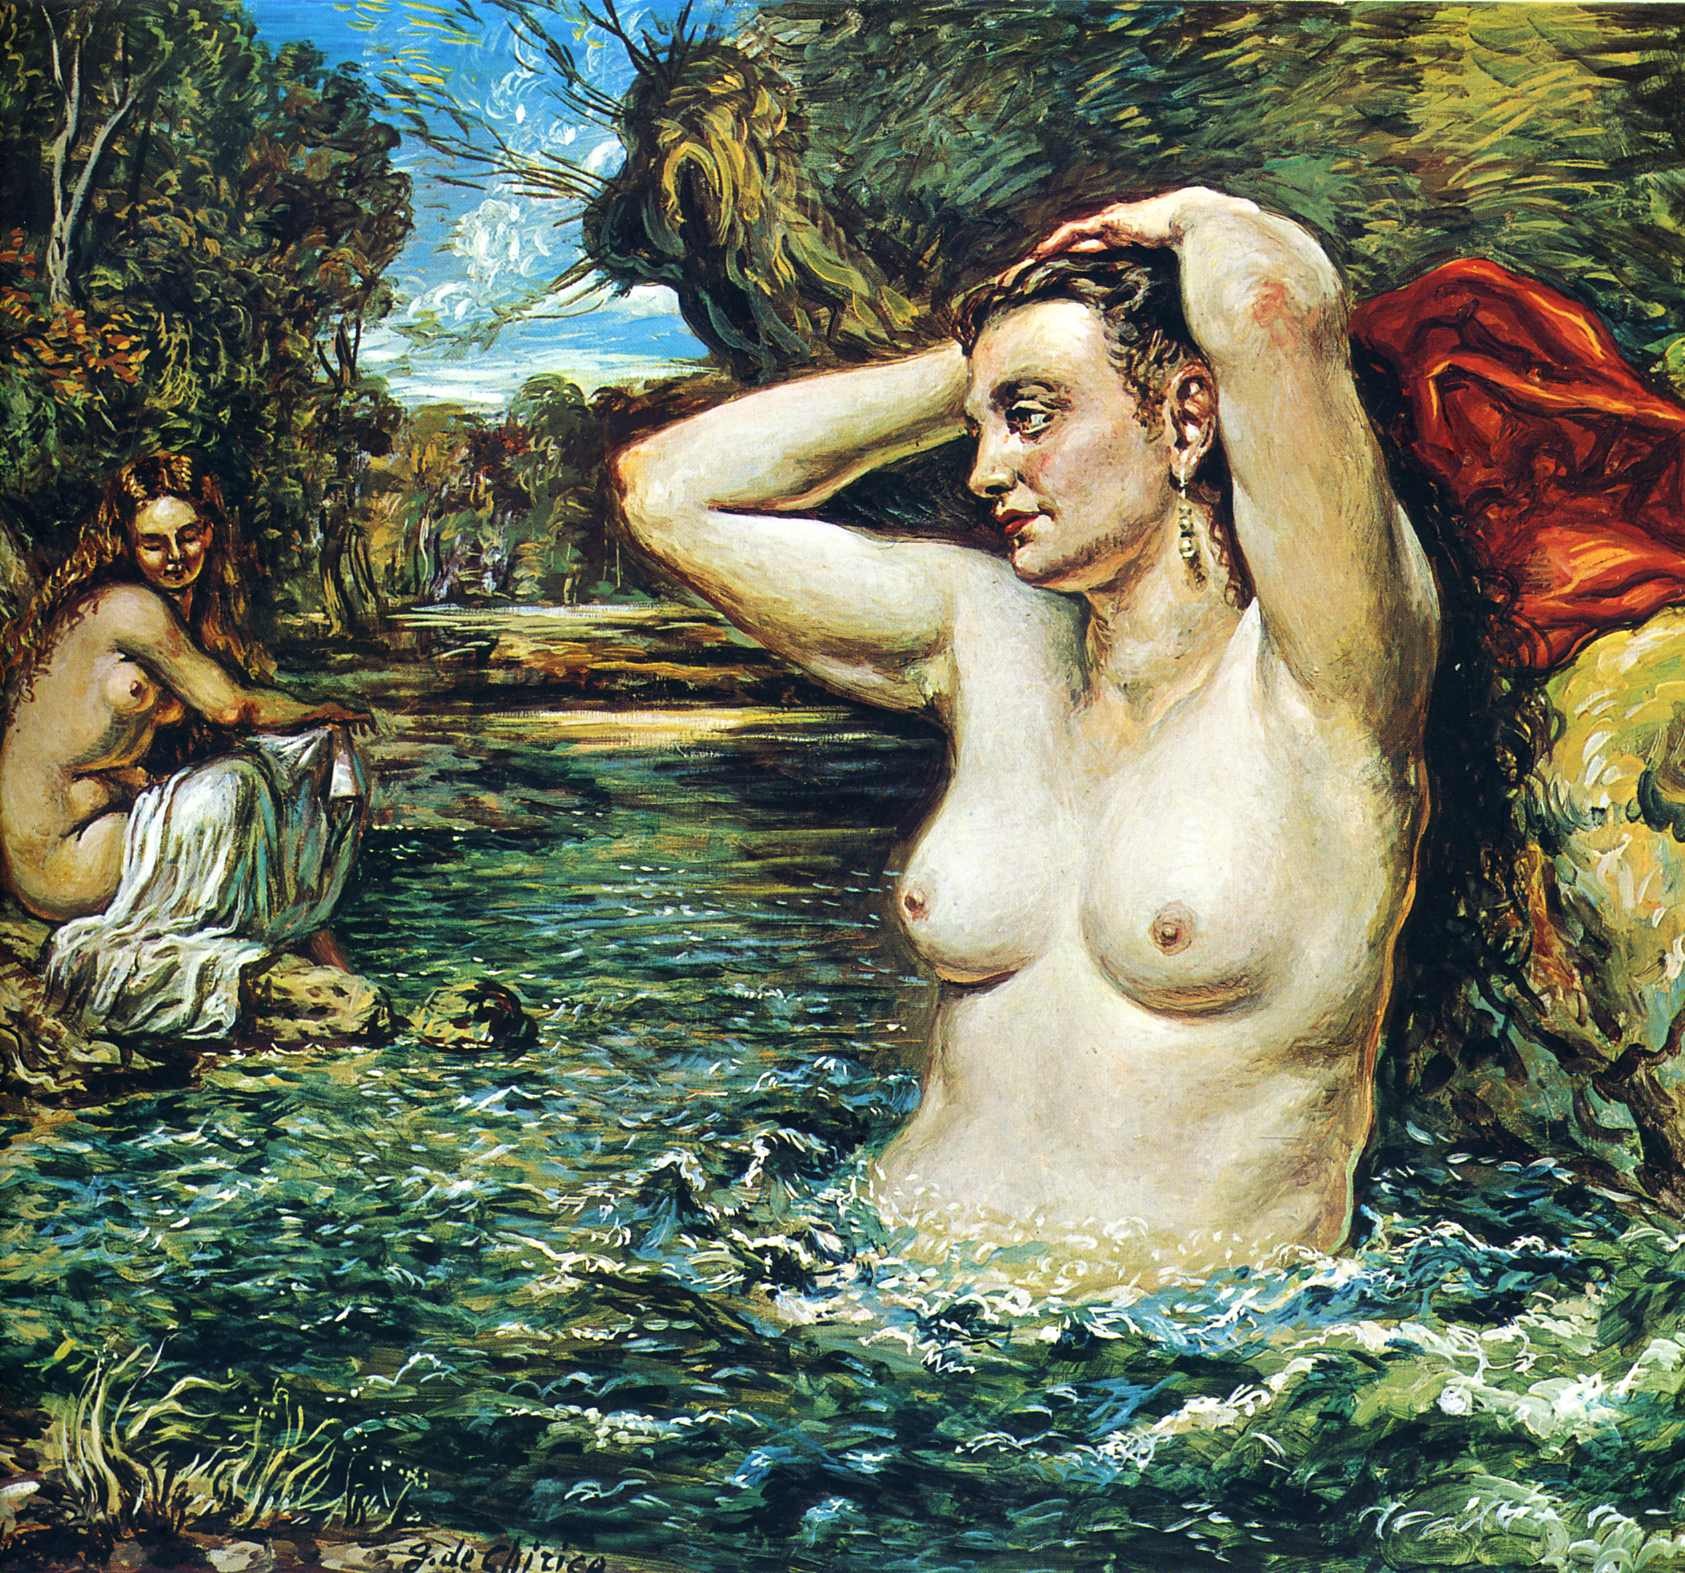 http://uploads8.wikipaintings.org/images/giorgio-de-chirico/nymphs-bathing-1955.jpg